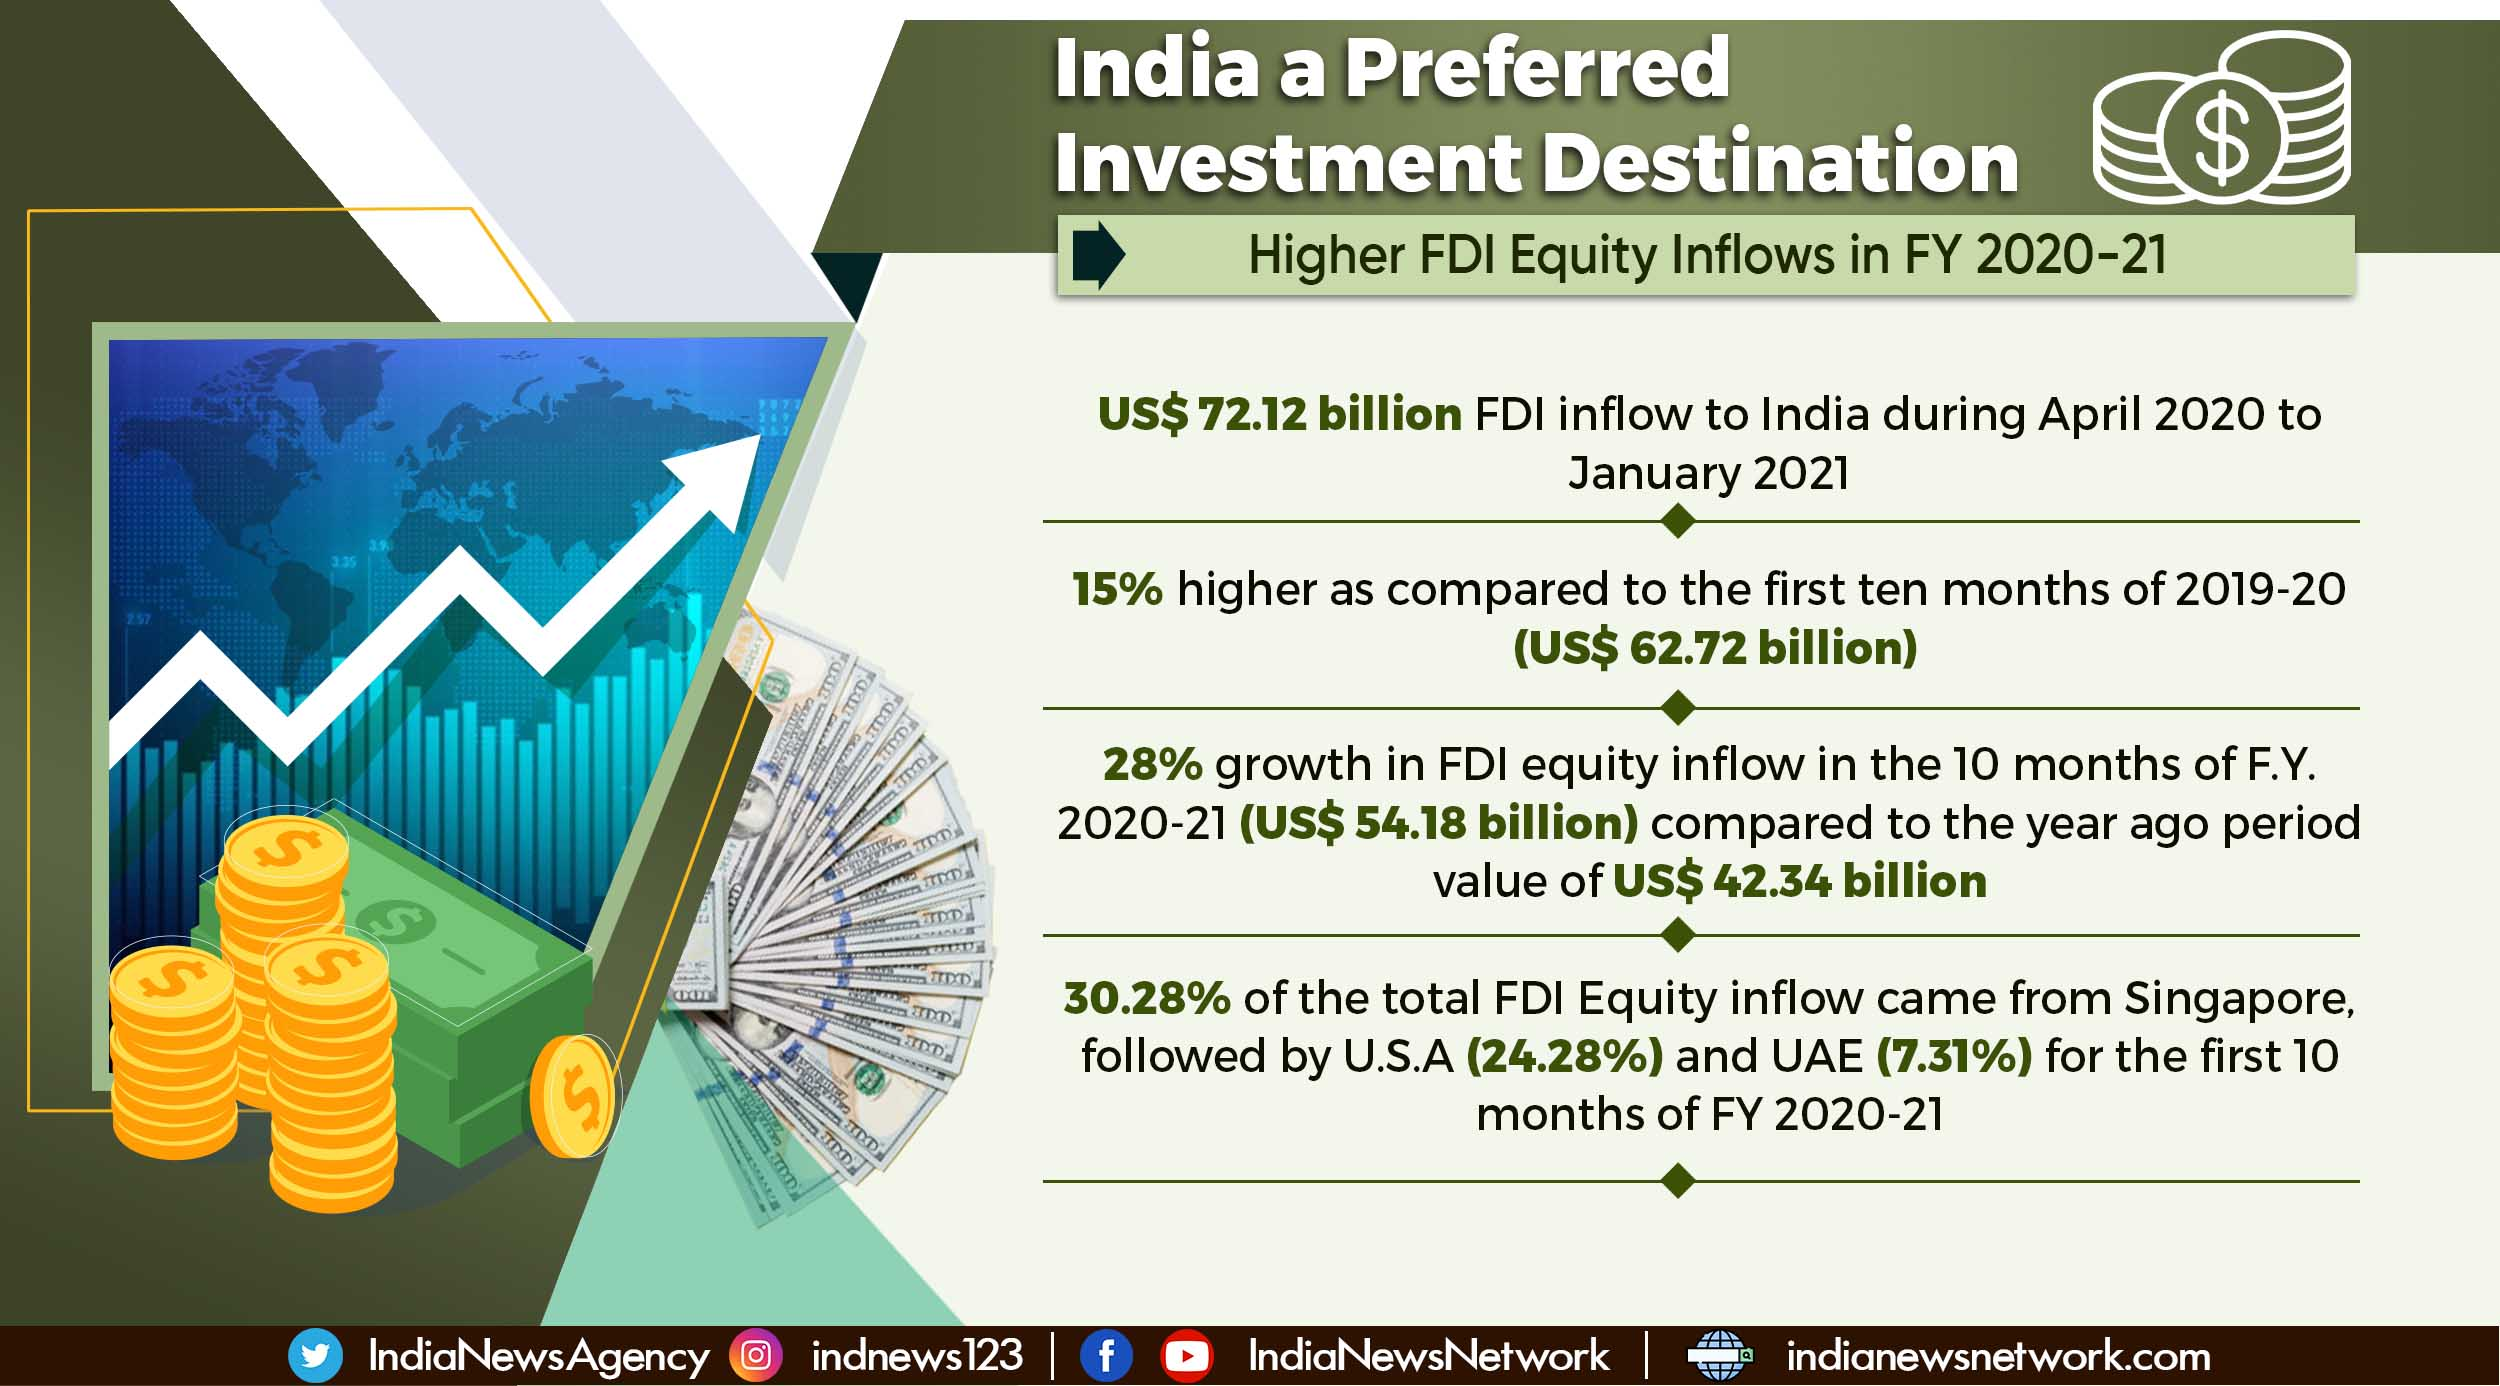 FDI inflows grow, India emerges as preferred investment destination for global investors